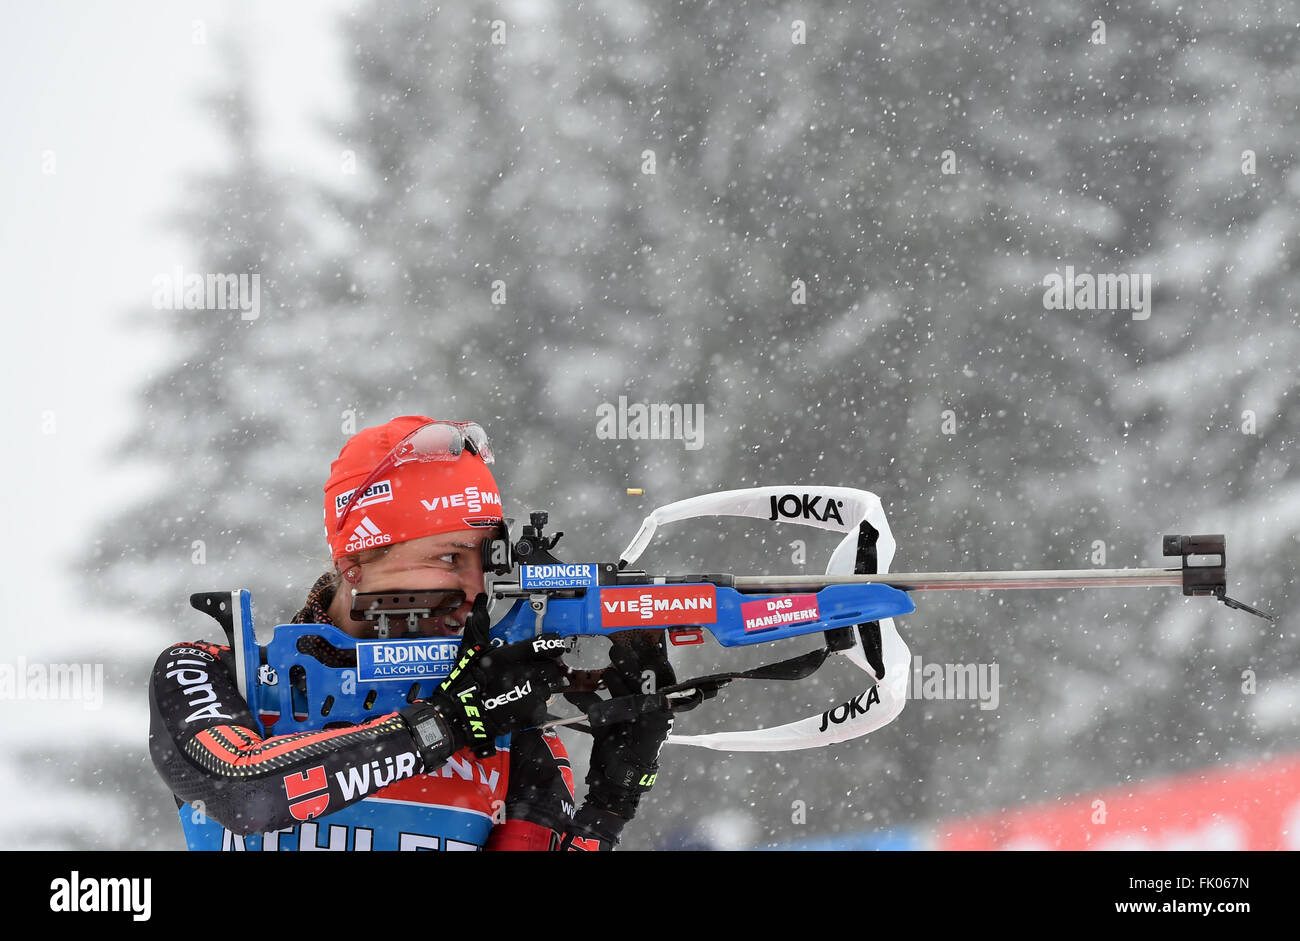 Female Biathlete Vanessa Hinz of Germany in action during a training session at the Biathlon World Championships, - Stock Image